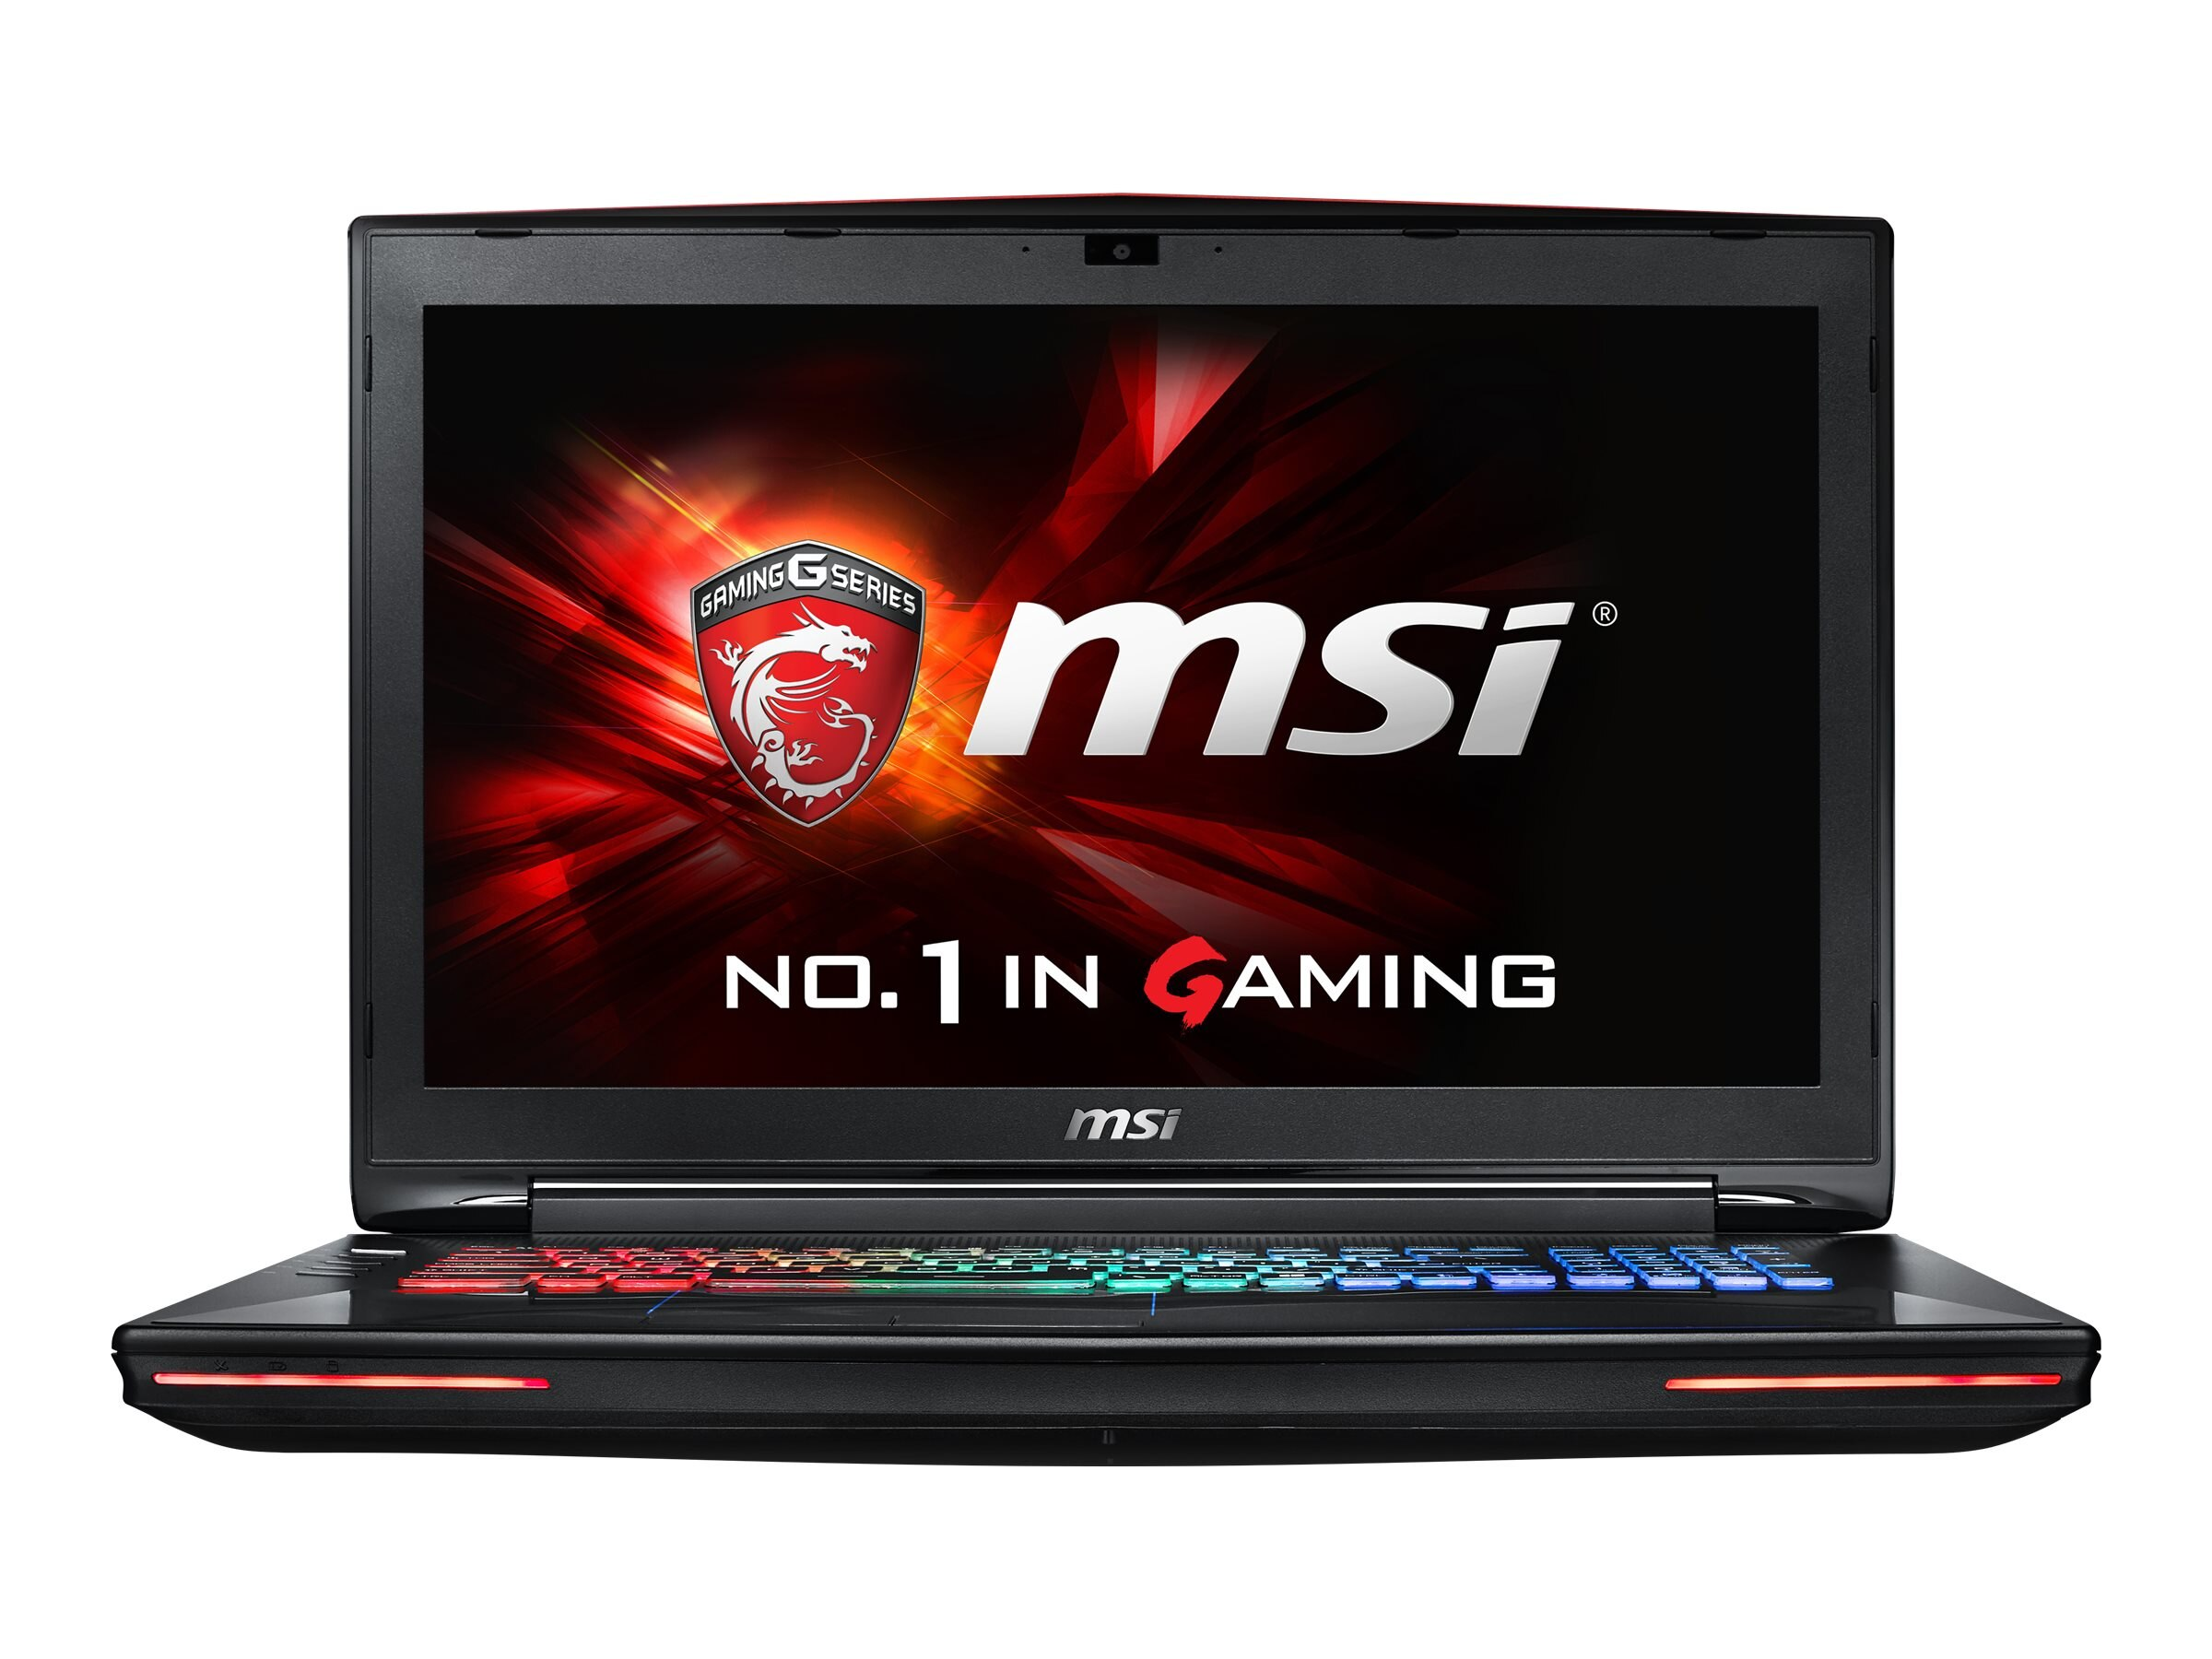 MSI GT72VR Dominator-063 Notebook PC, GT72VR DOMINATOR-063